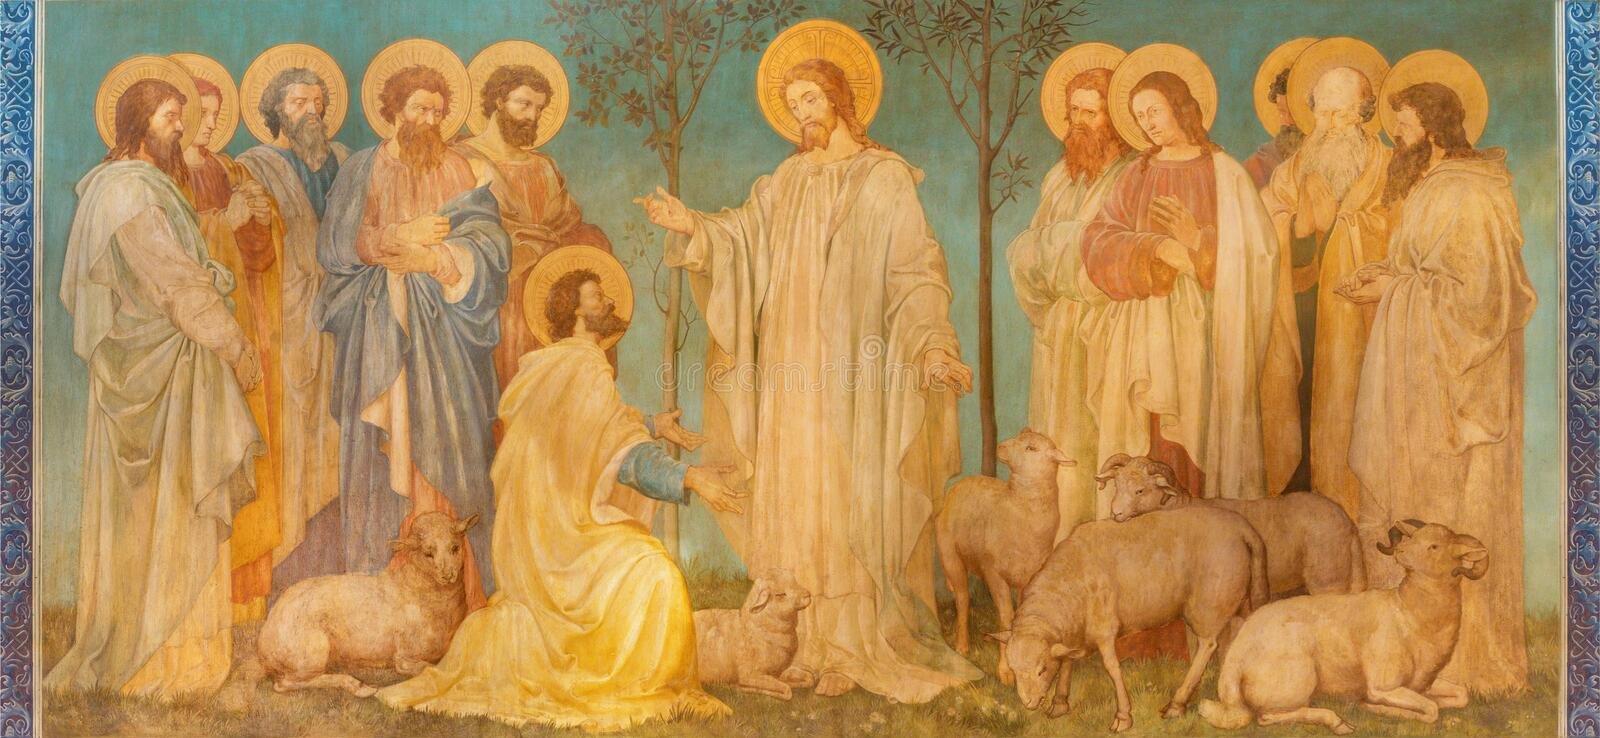 LONDON, GREAT BRITAIN - SEPTEMBER 19, 2017: The fresco of scene 'Feed my sheep' - Jesus give the power to St. Peter. In church St. Mary Abbots by royalty free stock image